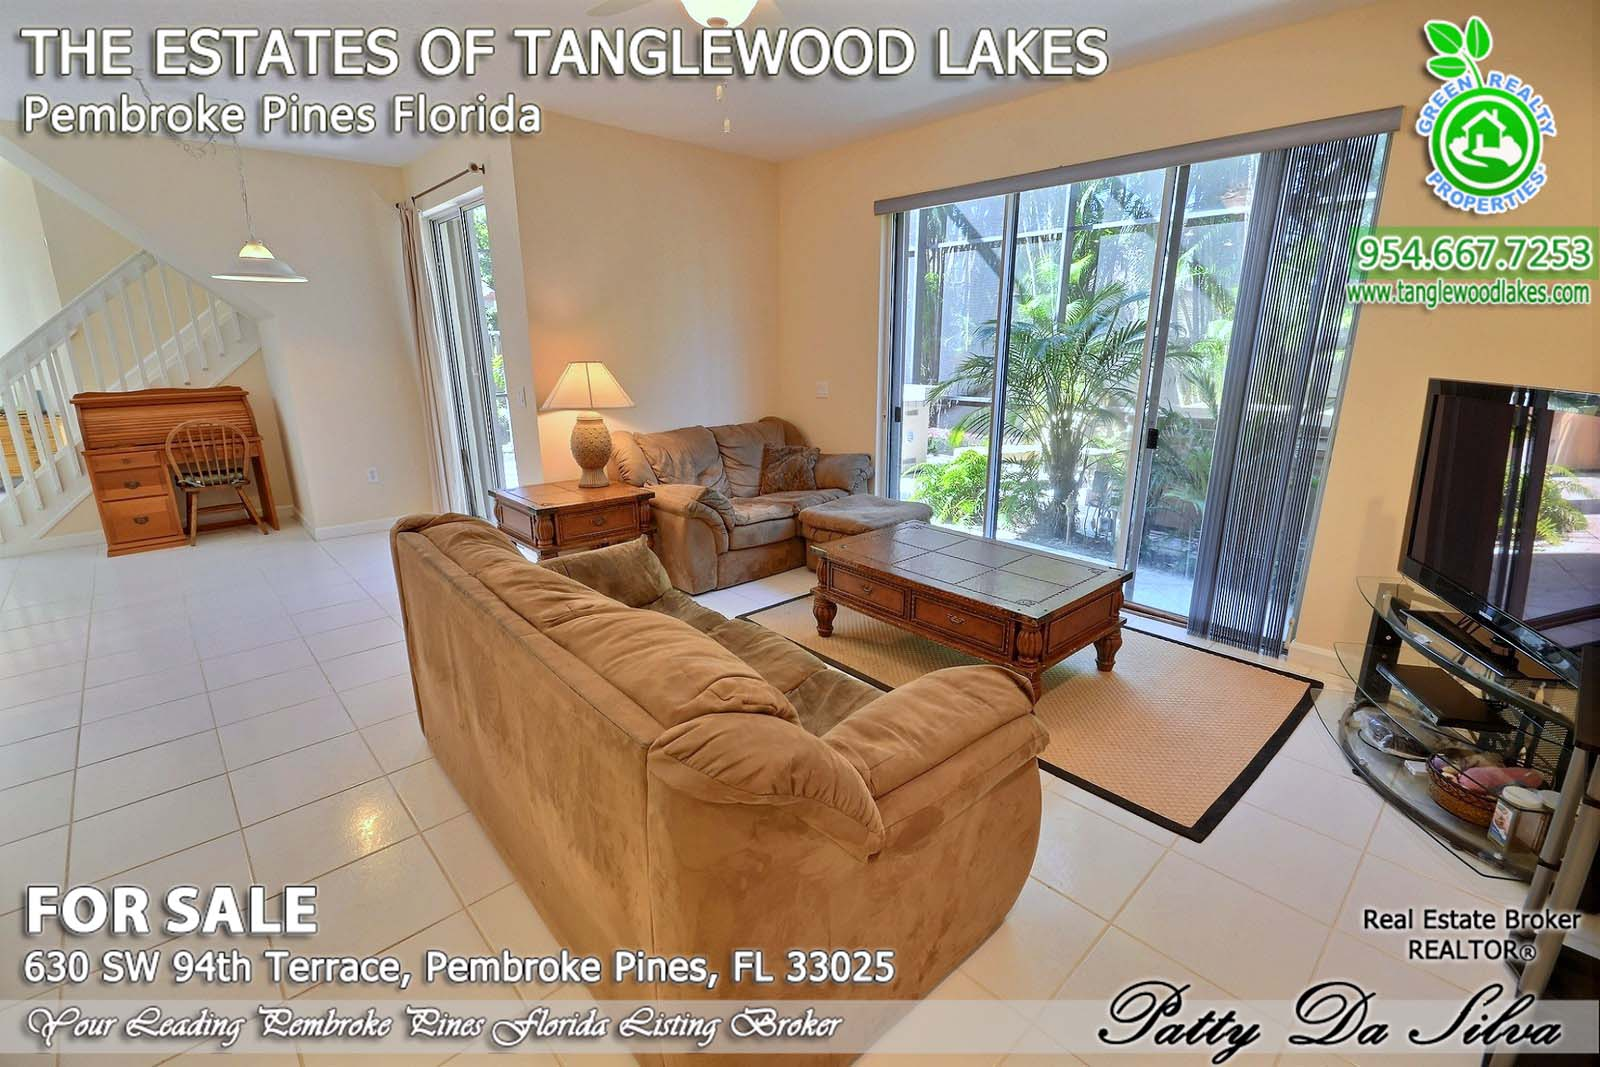 Tanglewood Lakes Real Estate Agents